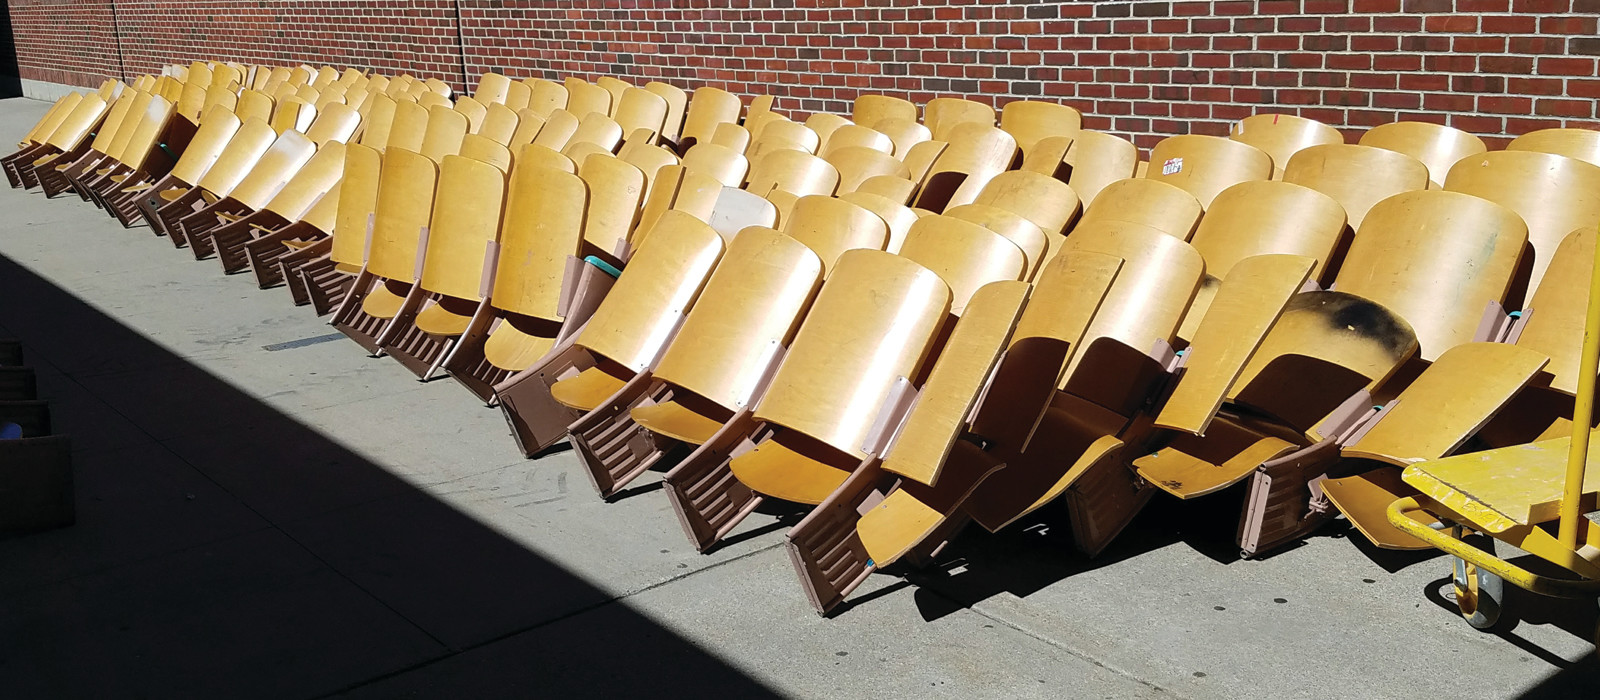 IF THESE SEATS COULD TALK: The auditorium seats lined the Cranston West walkways, waiting to be taken away. These same seats have seen 54 years of students sitting in them for school-wide events and community happenings, with generations of people utilizing the space for nearly 60 years.